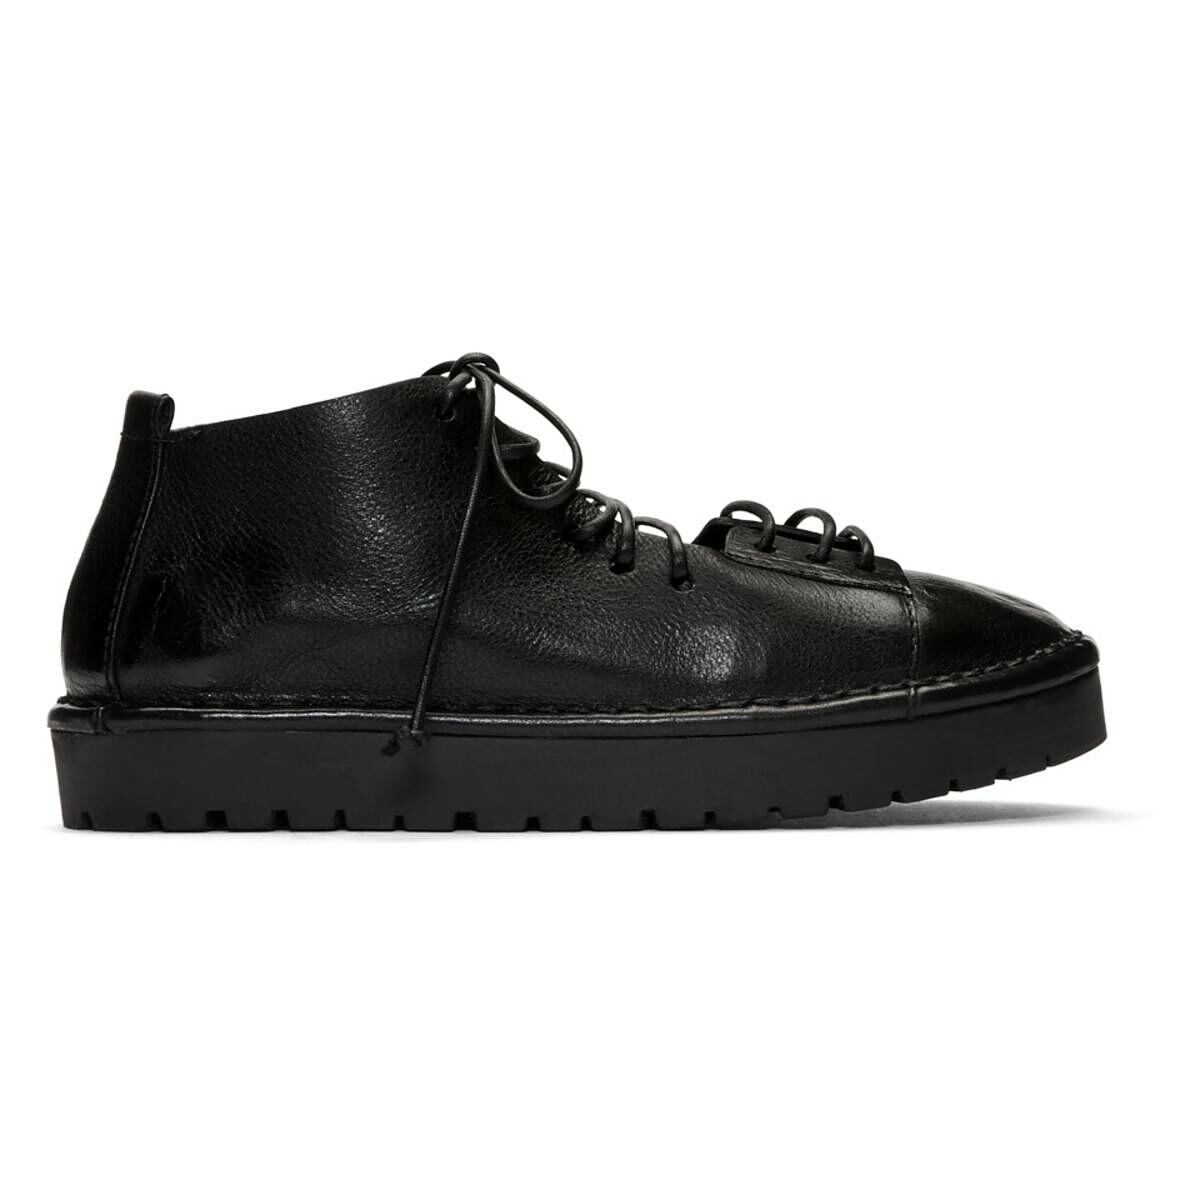 Marsell Black Gomme Sancrispa Alta Pedula Oxfords Ssense USA WOMEN Women SHOES Womens LEATHER SHOES